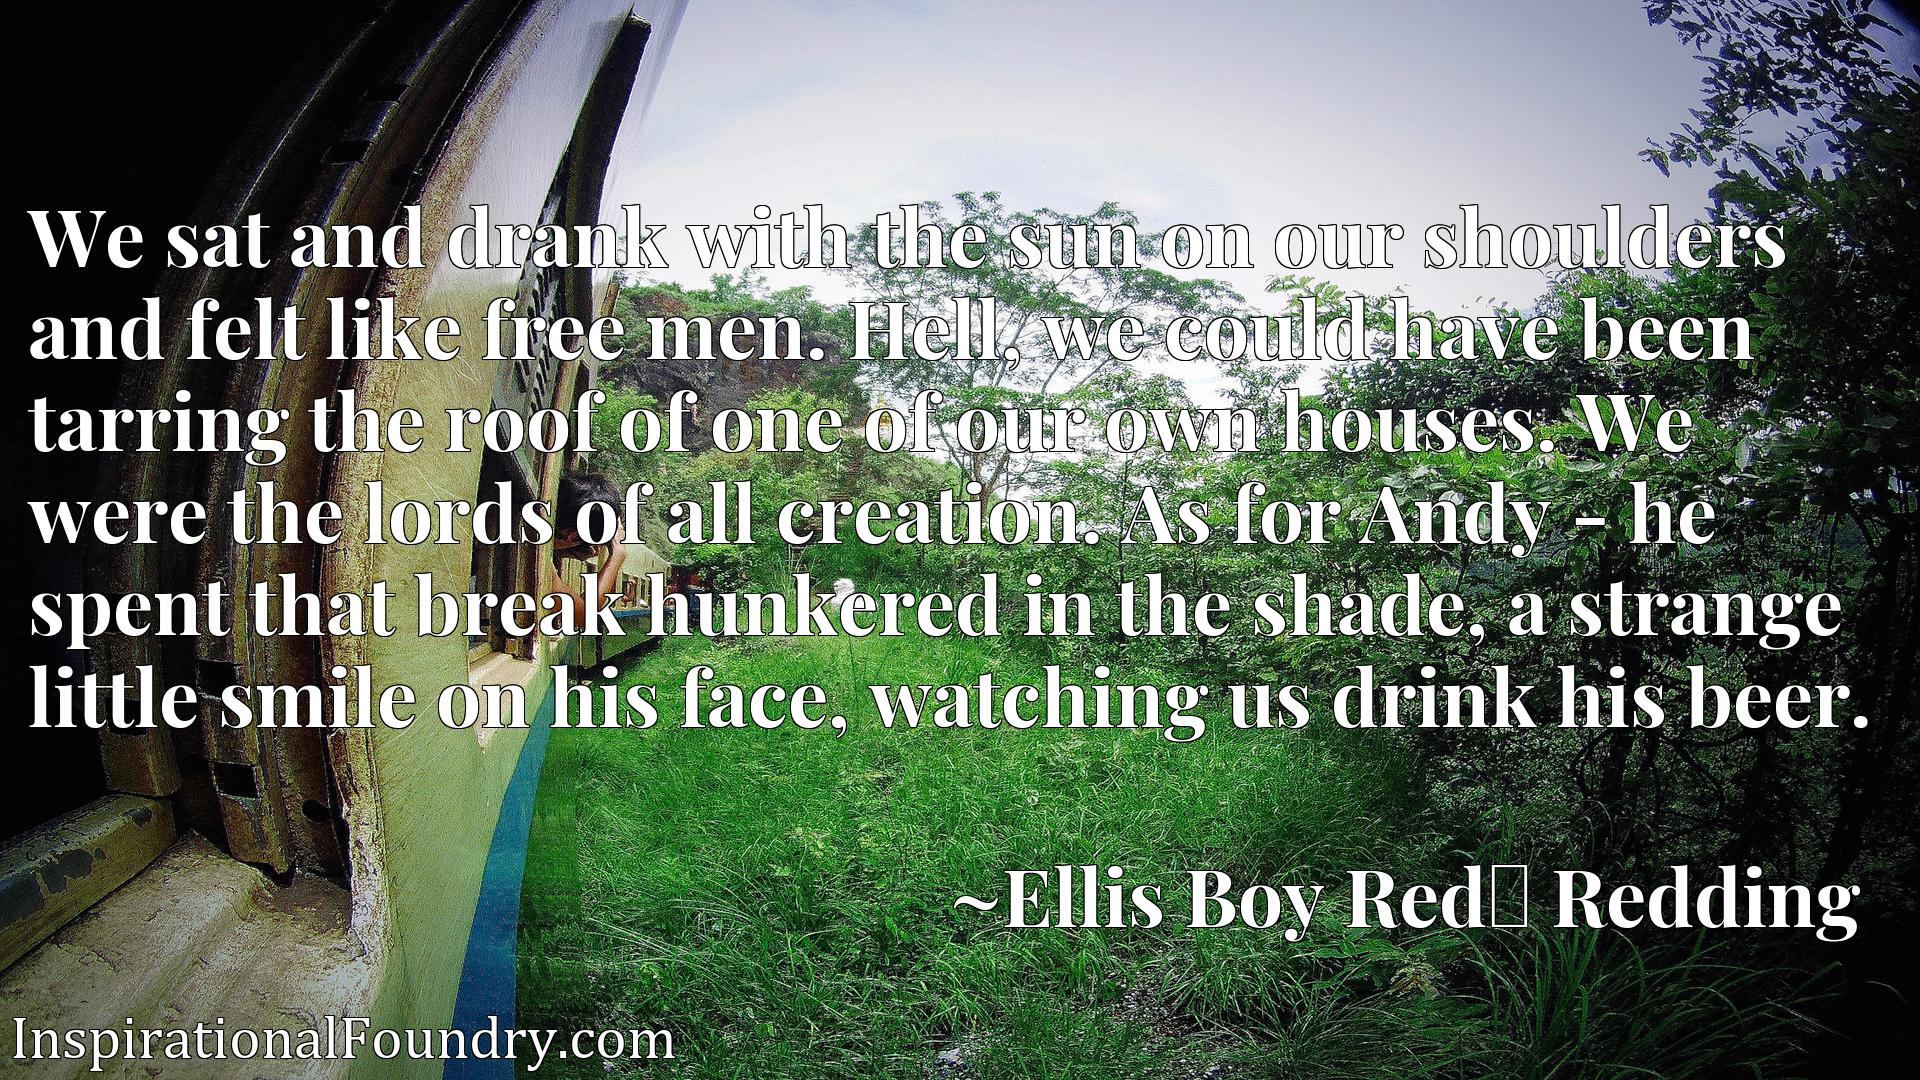 We sat and drank with the sun on our shoulders and felt like free men. Hell, we could have been tarring the roof of one of our own houses. We were the lords of all creation. As for Andy - he spent that break hunkered in the shade, a strange little smile on his face, watching us drink his beer.